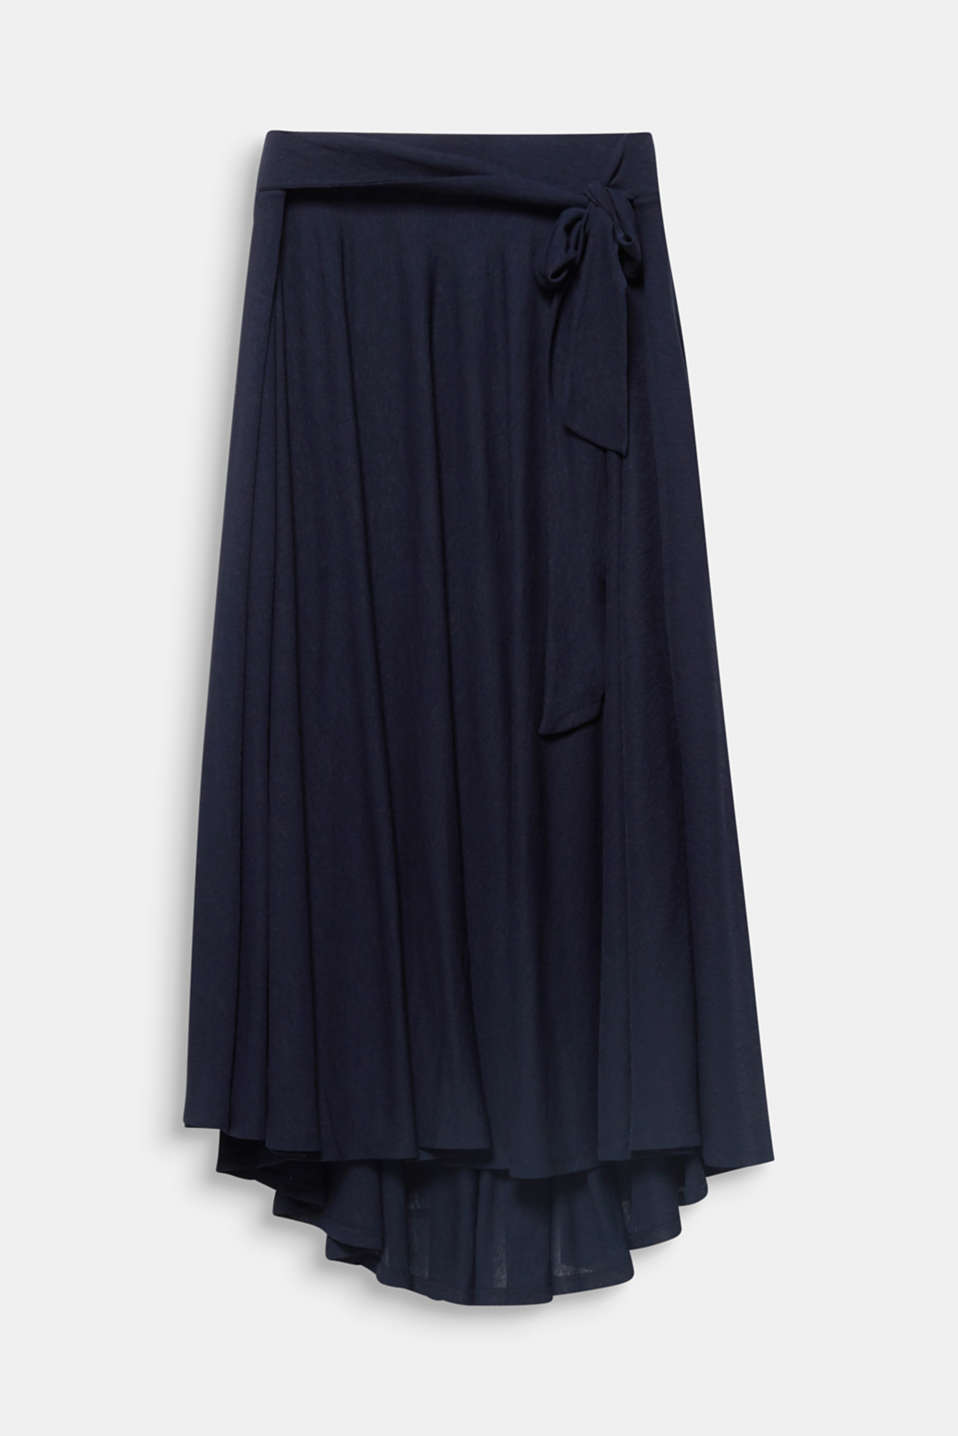 CURVY A-line jersey skirt, NAVY, detail image number 5